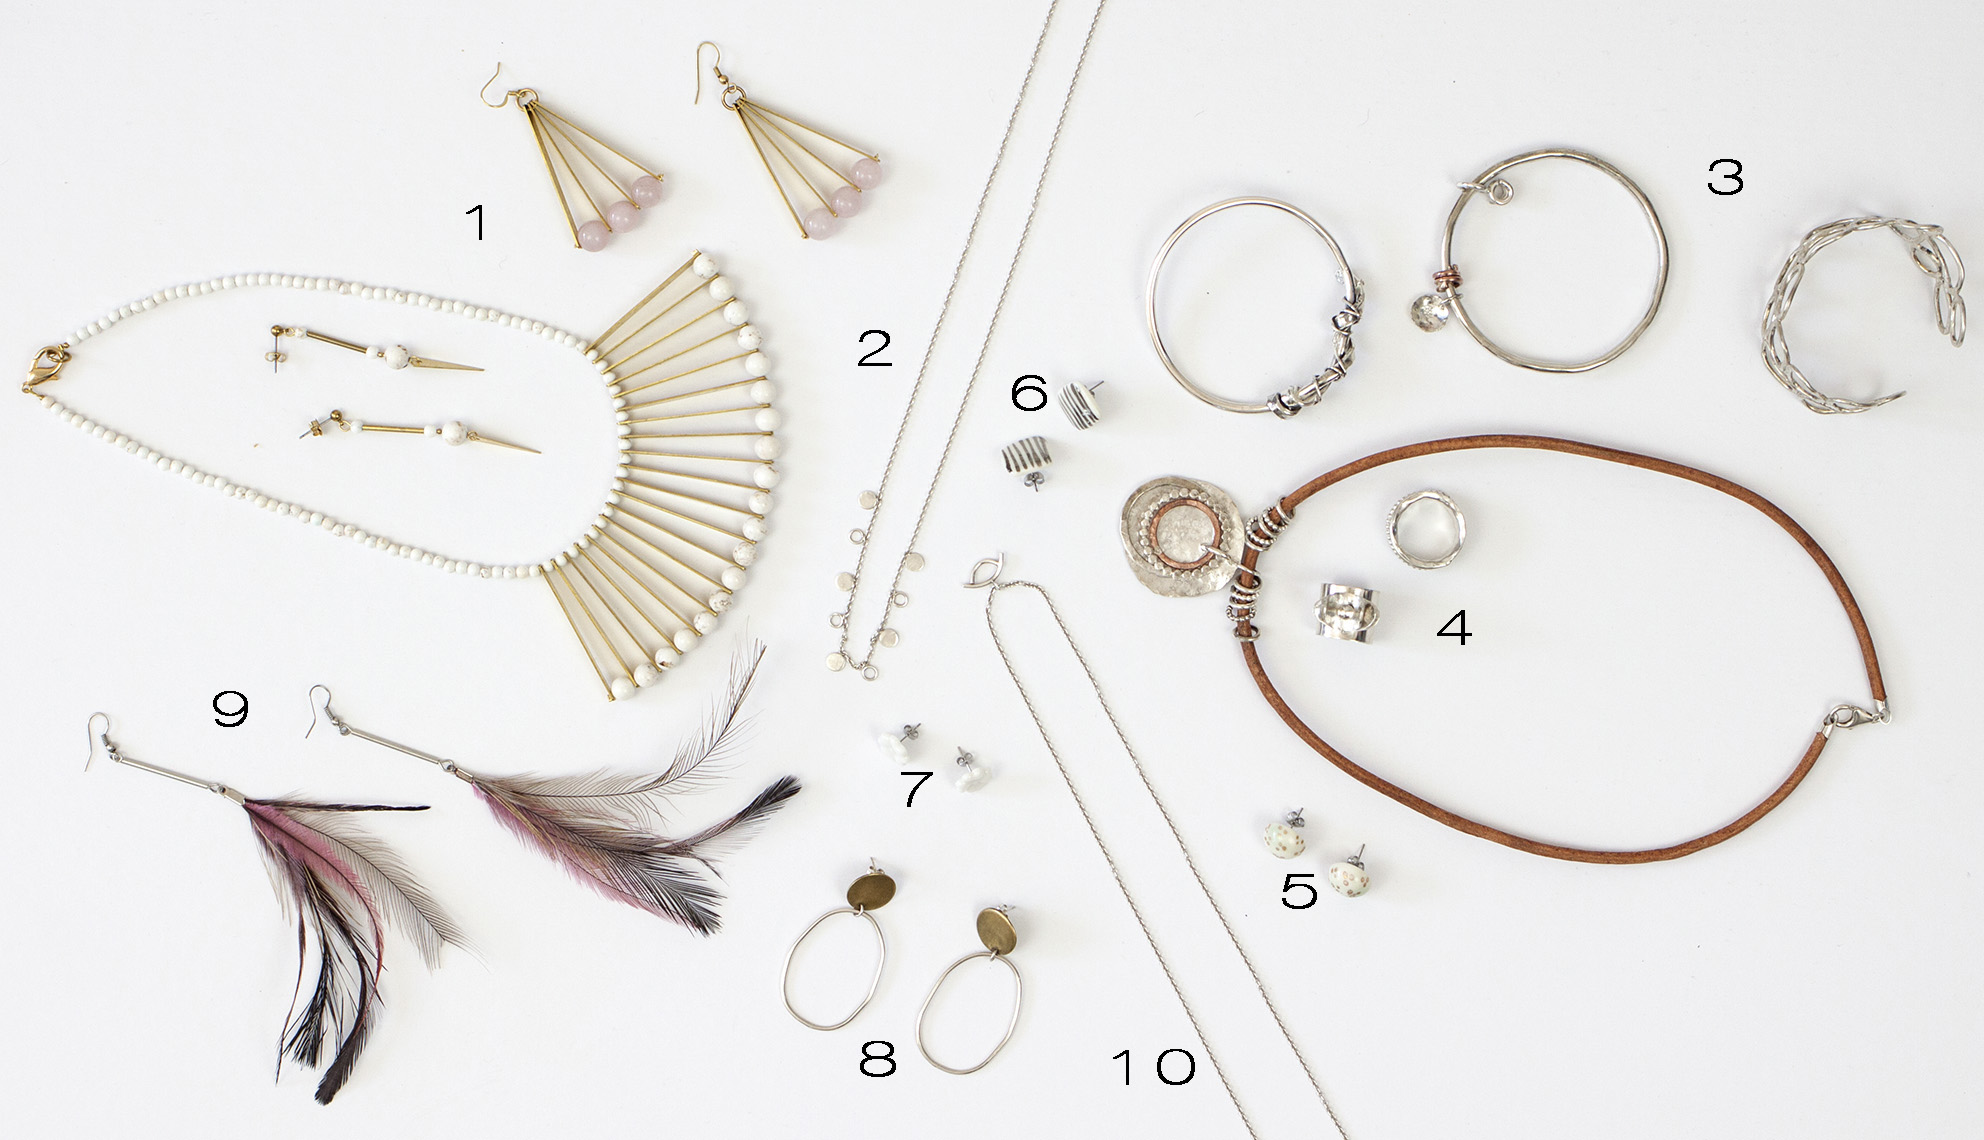 ABOVE 1. Brass Beaded Jewellery by Madi Young , 2. Silver Necklace by I Am Jika , 3. Silver Bangles by White Rock Silver , 4. Silver Necklace and Rings by White Rock Silver , 5. Ceramic Earrings by Amy Burns , 6. Ceramic Earrings by Amy Burns , 7. Ceramic Earrings by Amy Burns , 8. Silver and Brass Earrings by I Am Jika , 9. Feather Earrings by Madi Young , 10. Silver Necklace by I Am Jika .